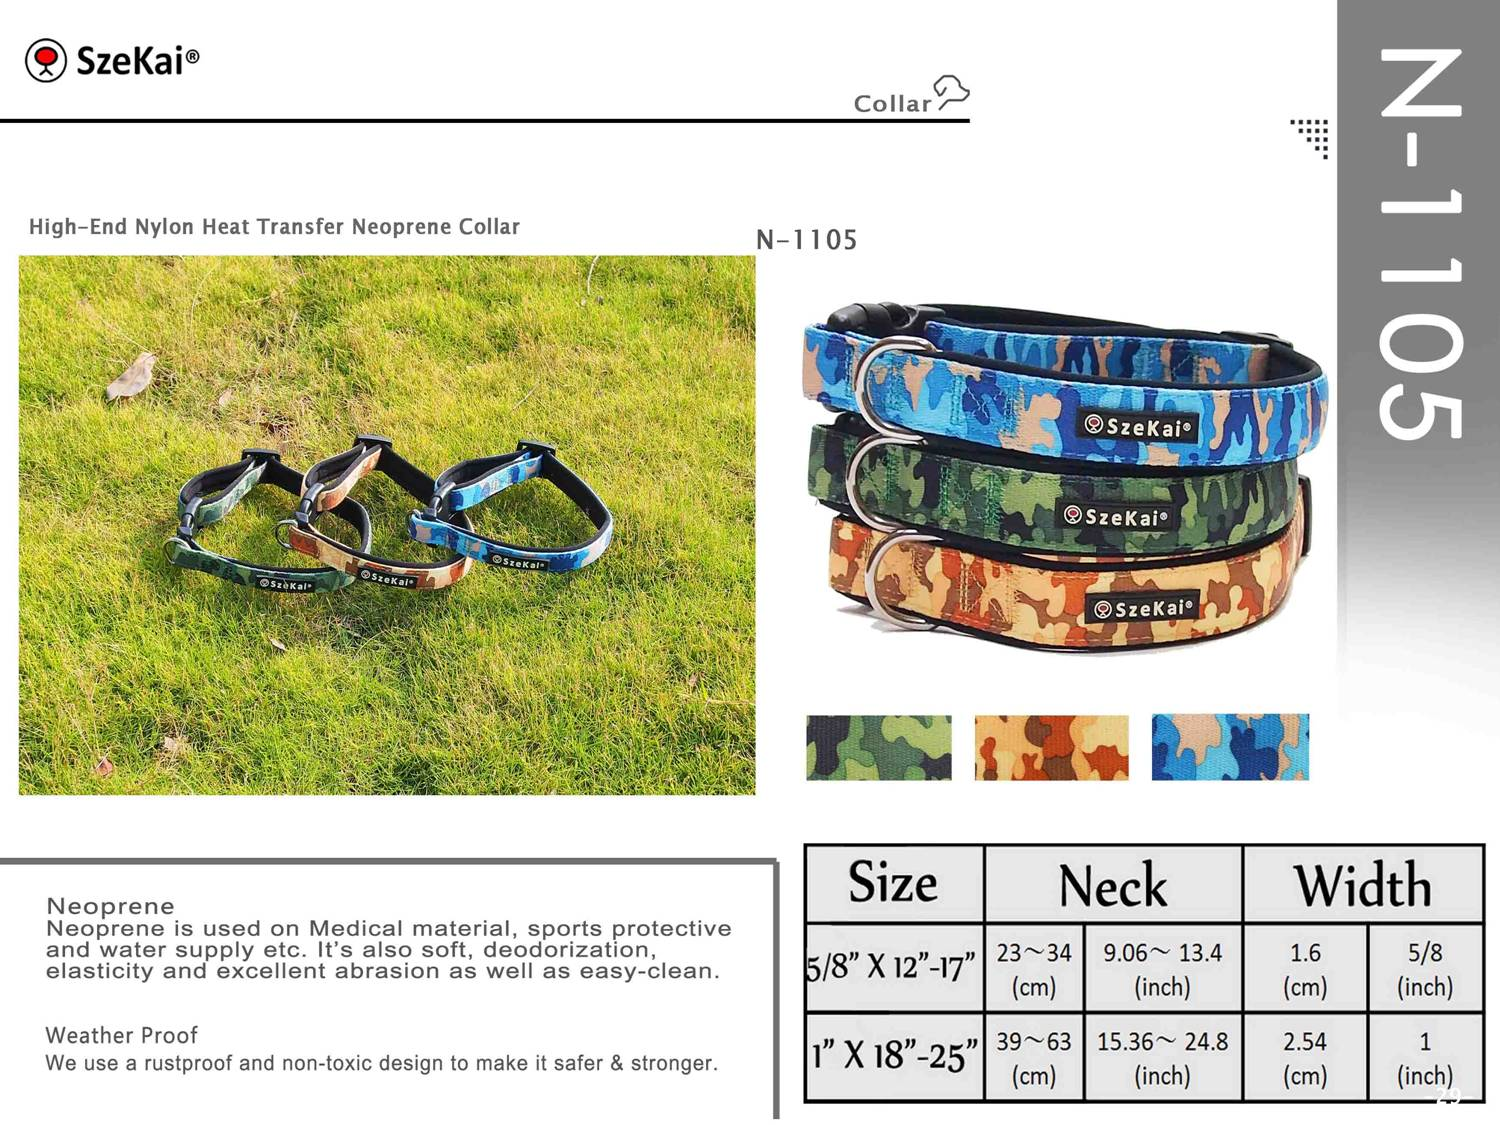 High-End Nylon Heat Transfer Neoprene Collar